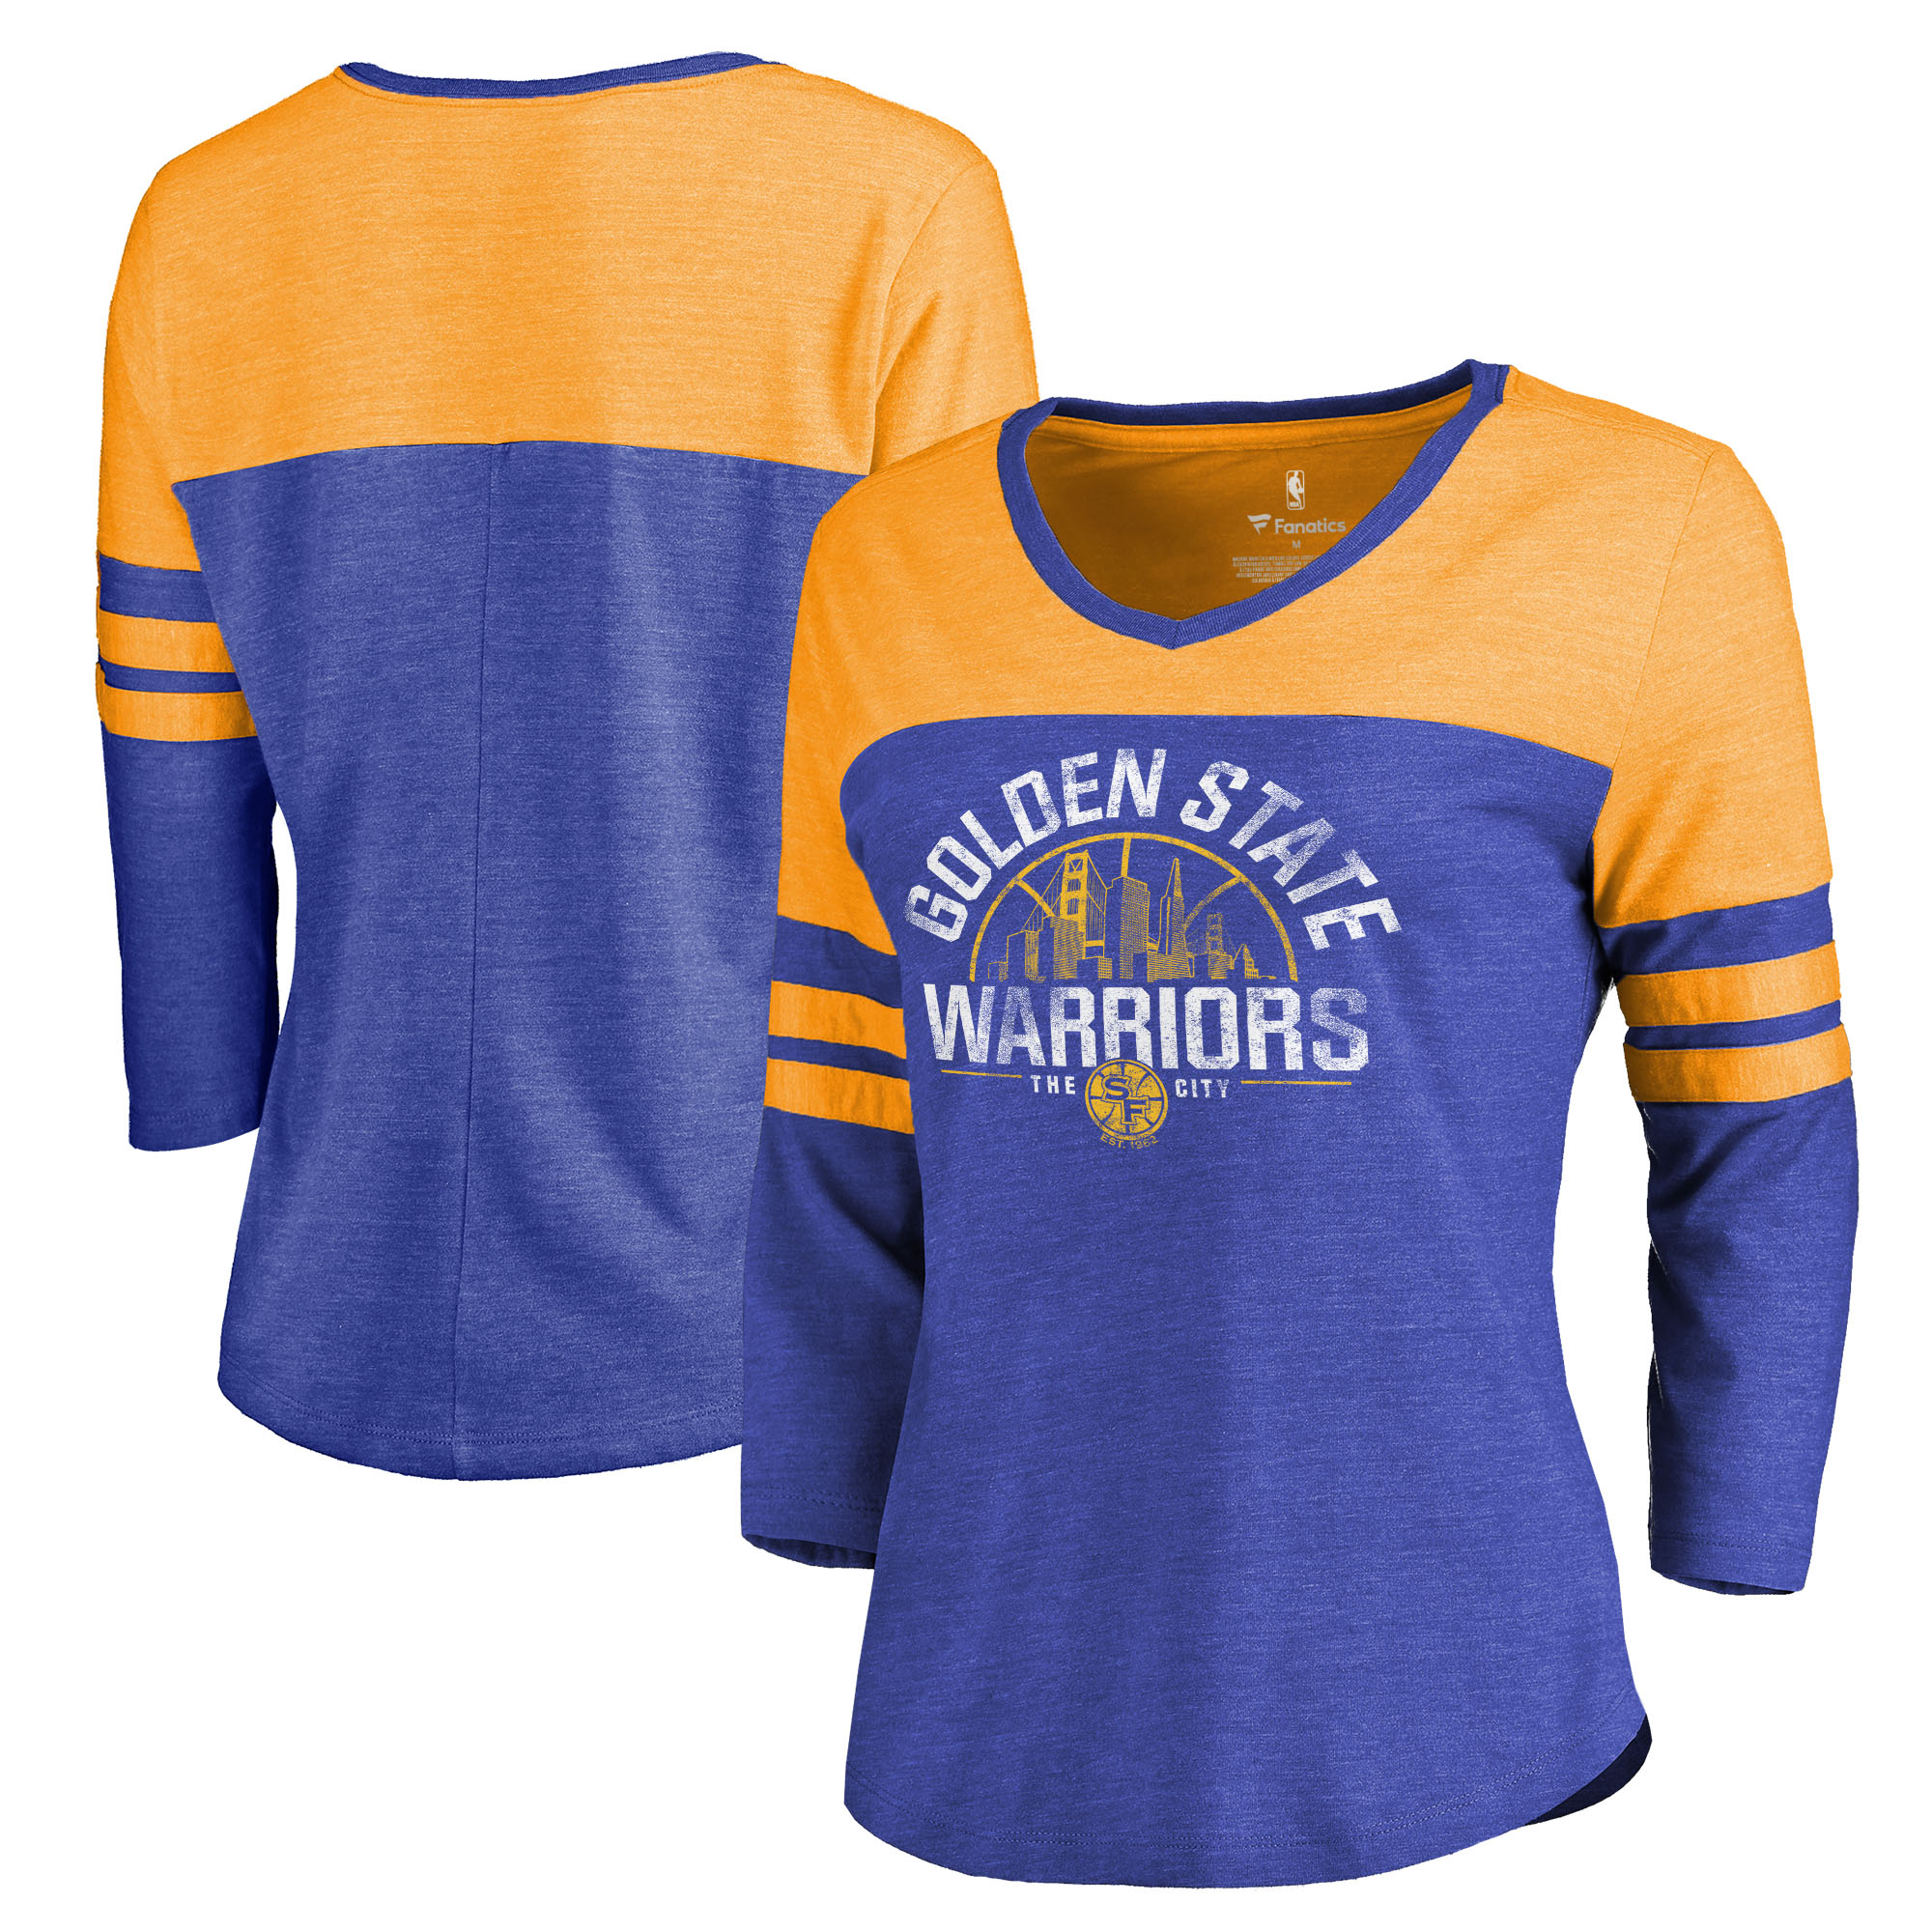 Golden State Warriors Fanatics Branded Women's Golden Gate Hometown Collection Three-Quarter Sleeve Tri-Blend T-Shirt - Royal